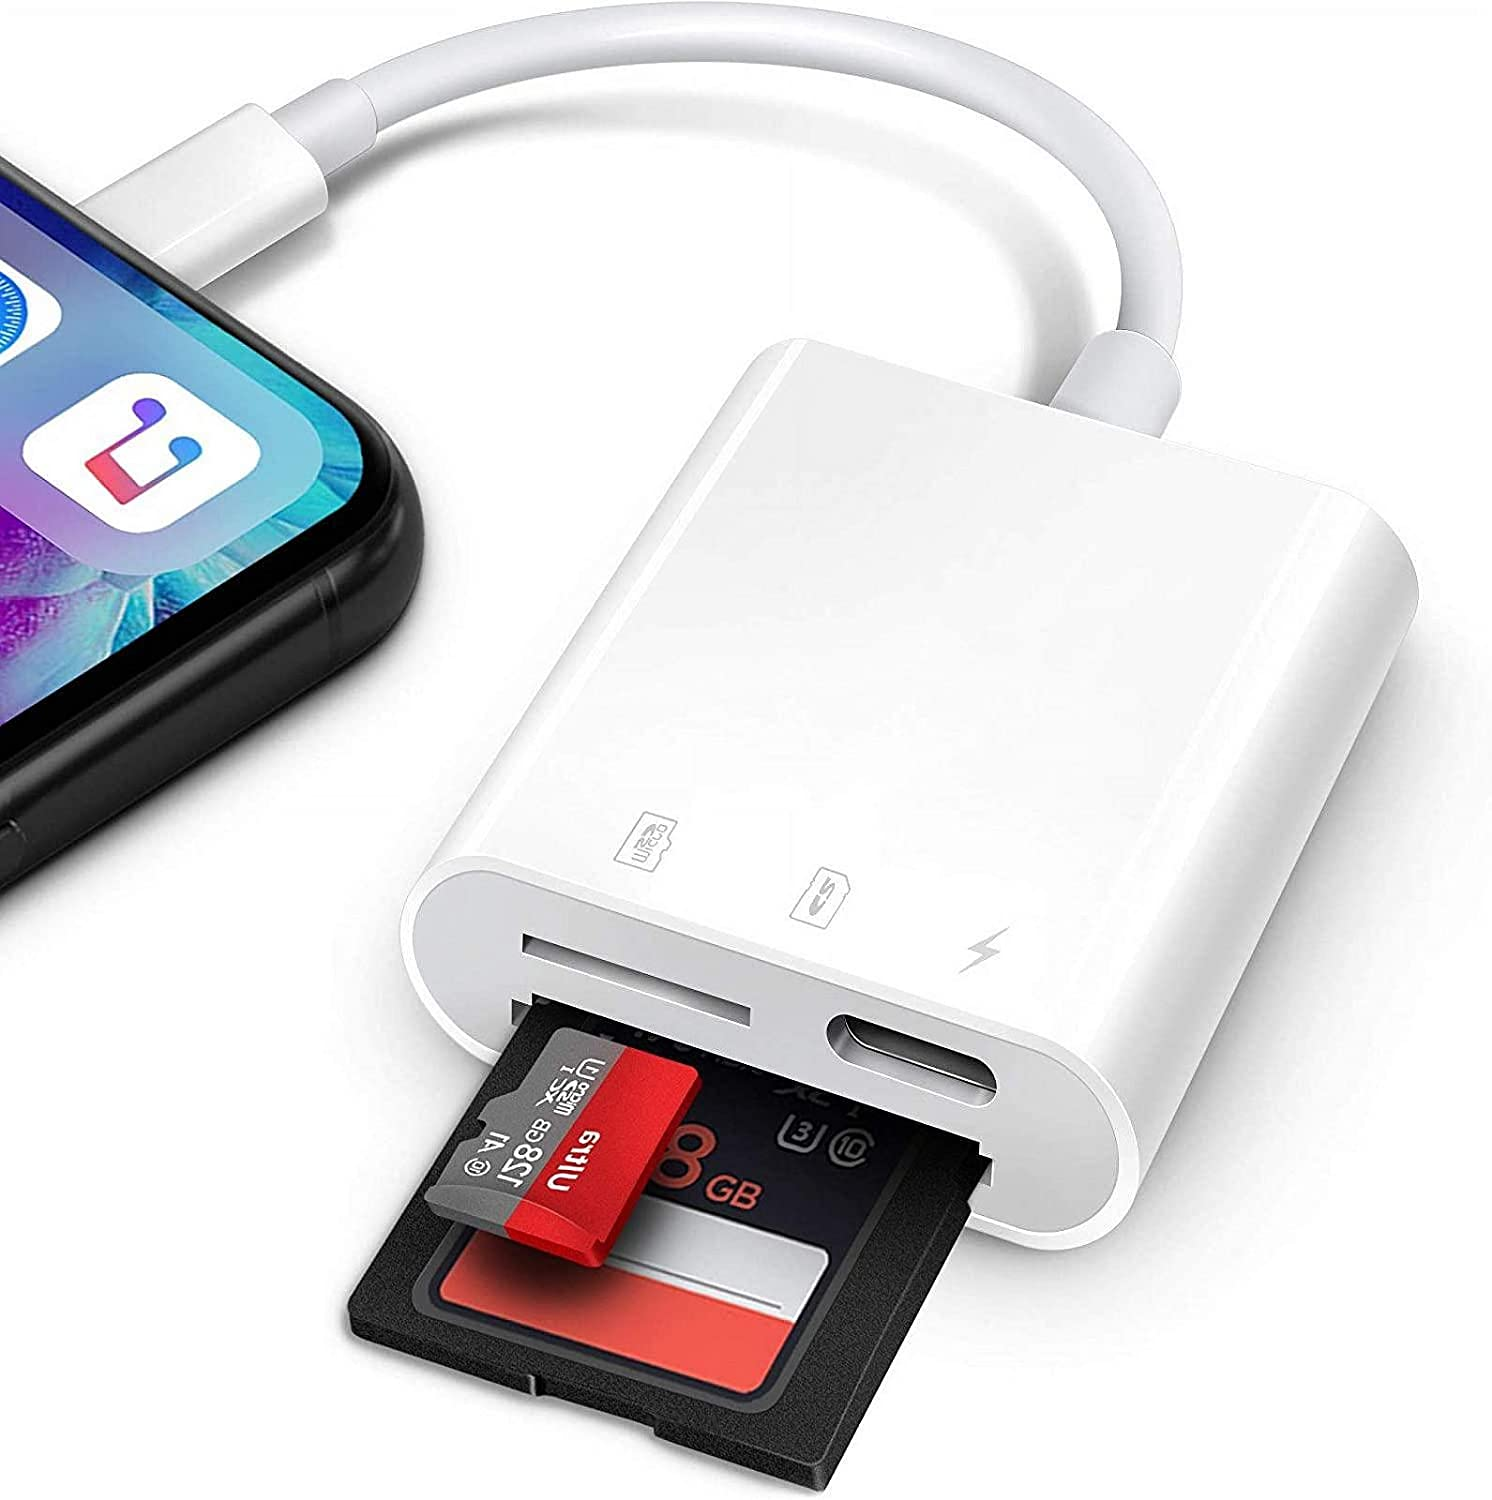 Lightning to SD Card Reader for iPhone iPad, Apple MFi Certified Veetone Dual Slots with Charging Port SD/Micro SD Card Reader Adapter Cable for SLR Cameras, Trail Game Camera Viewer, Plug and Play